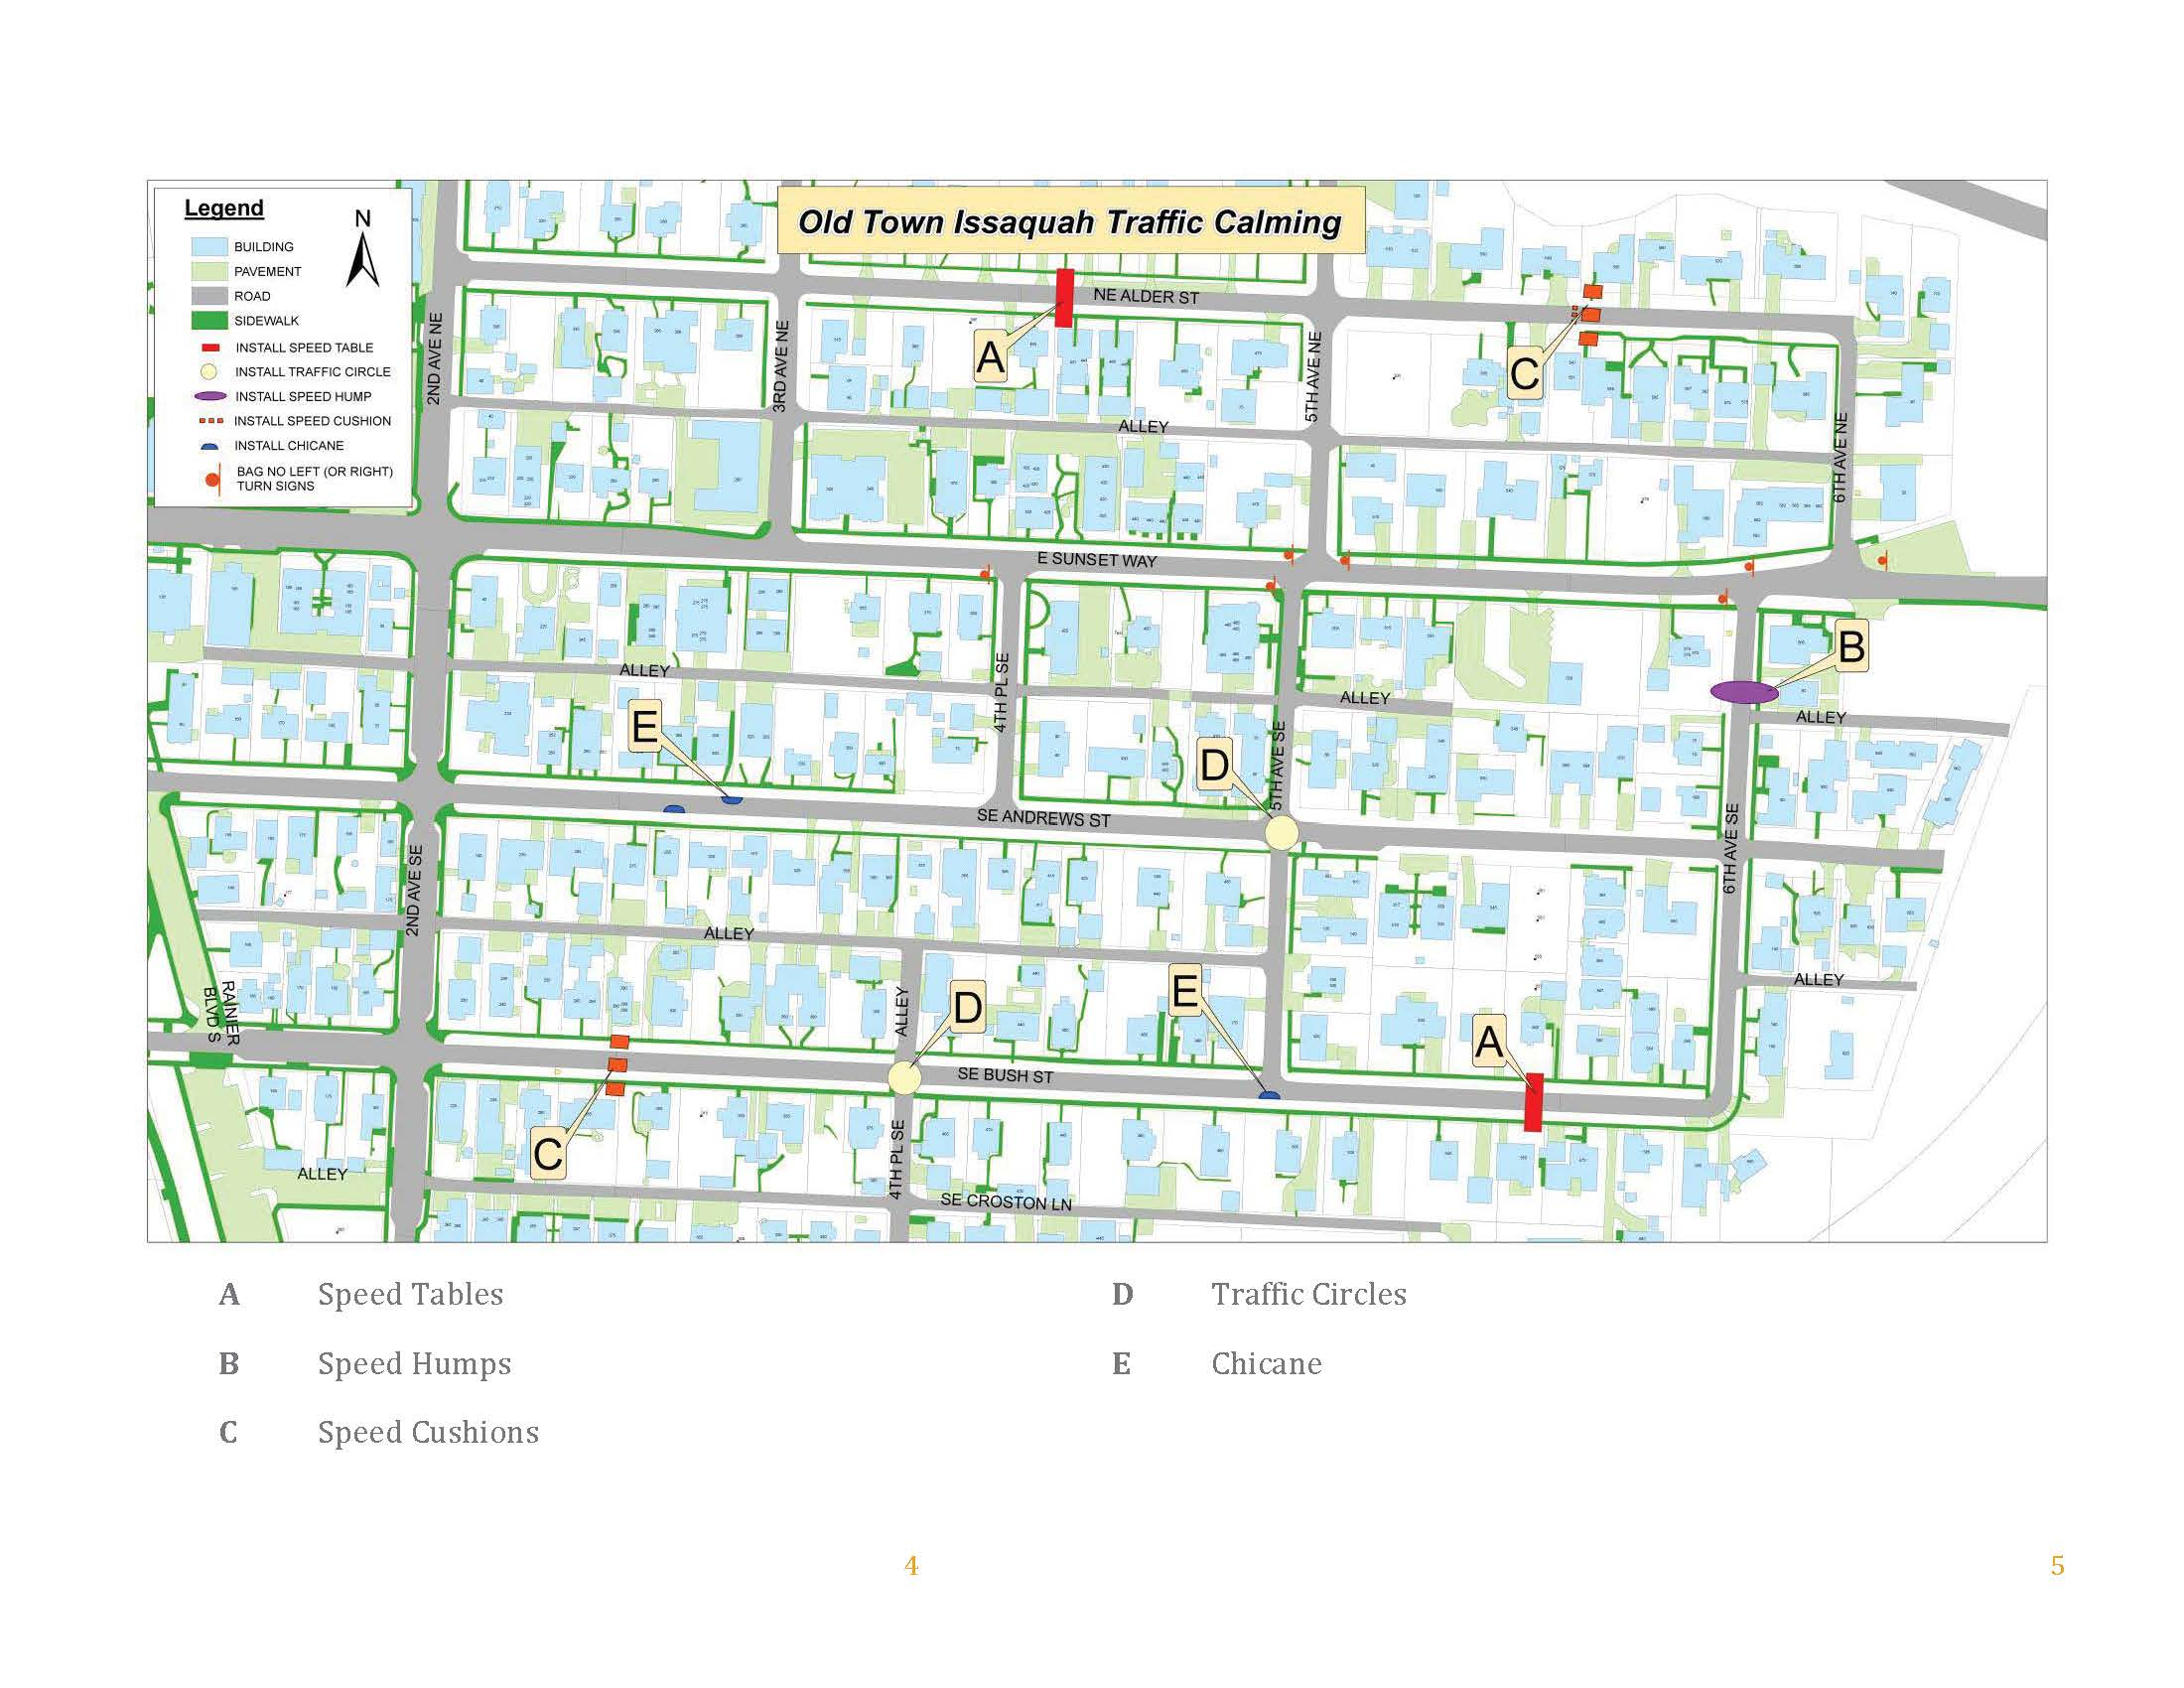 Olde Town Traffic Calming map